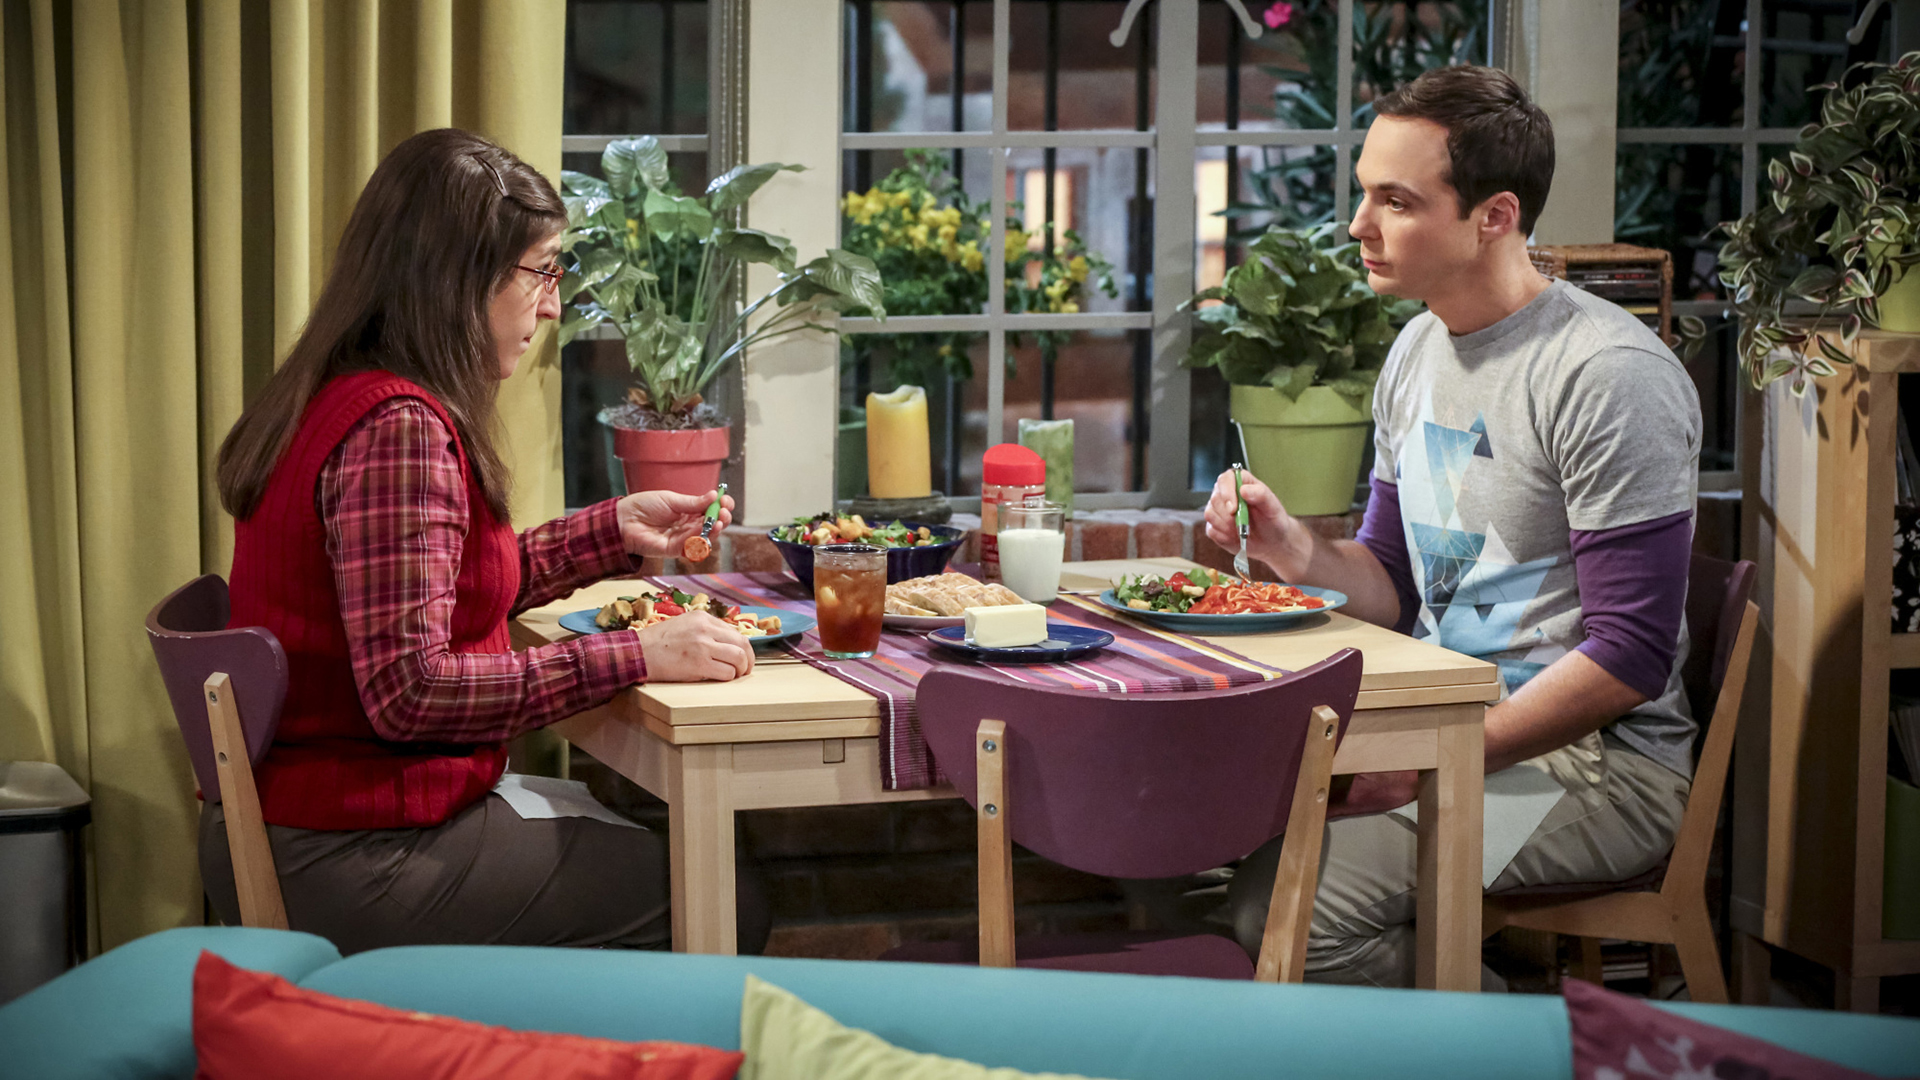 Amy and Sheldon discuss hosting brunch.